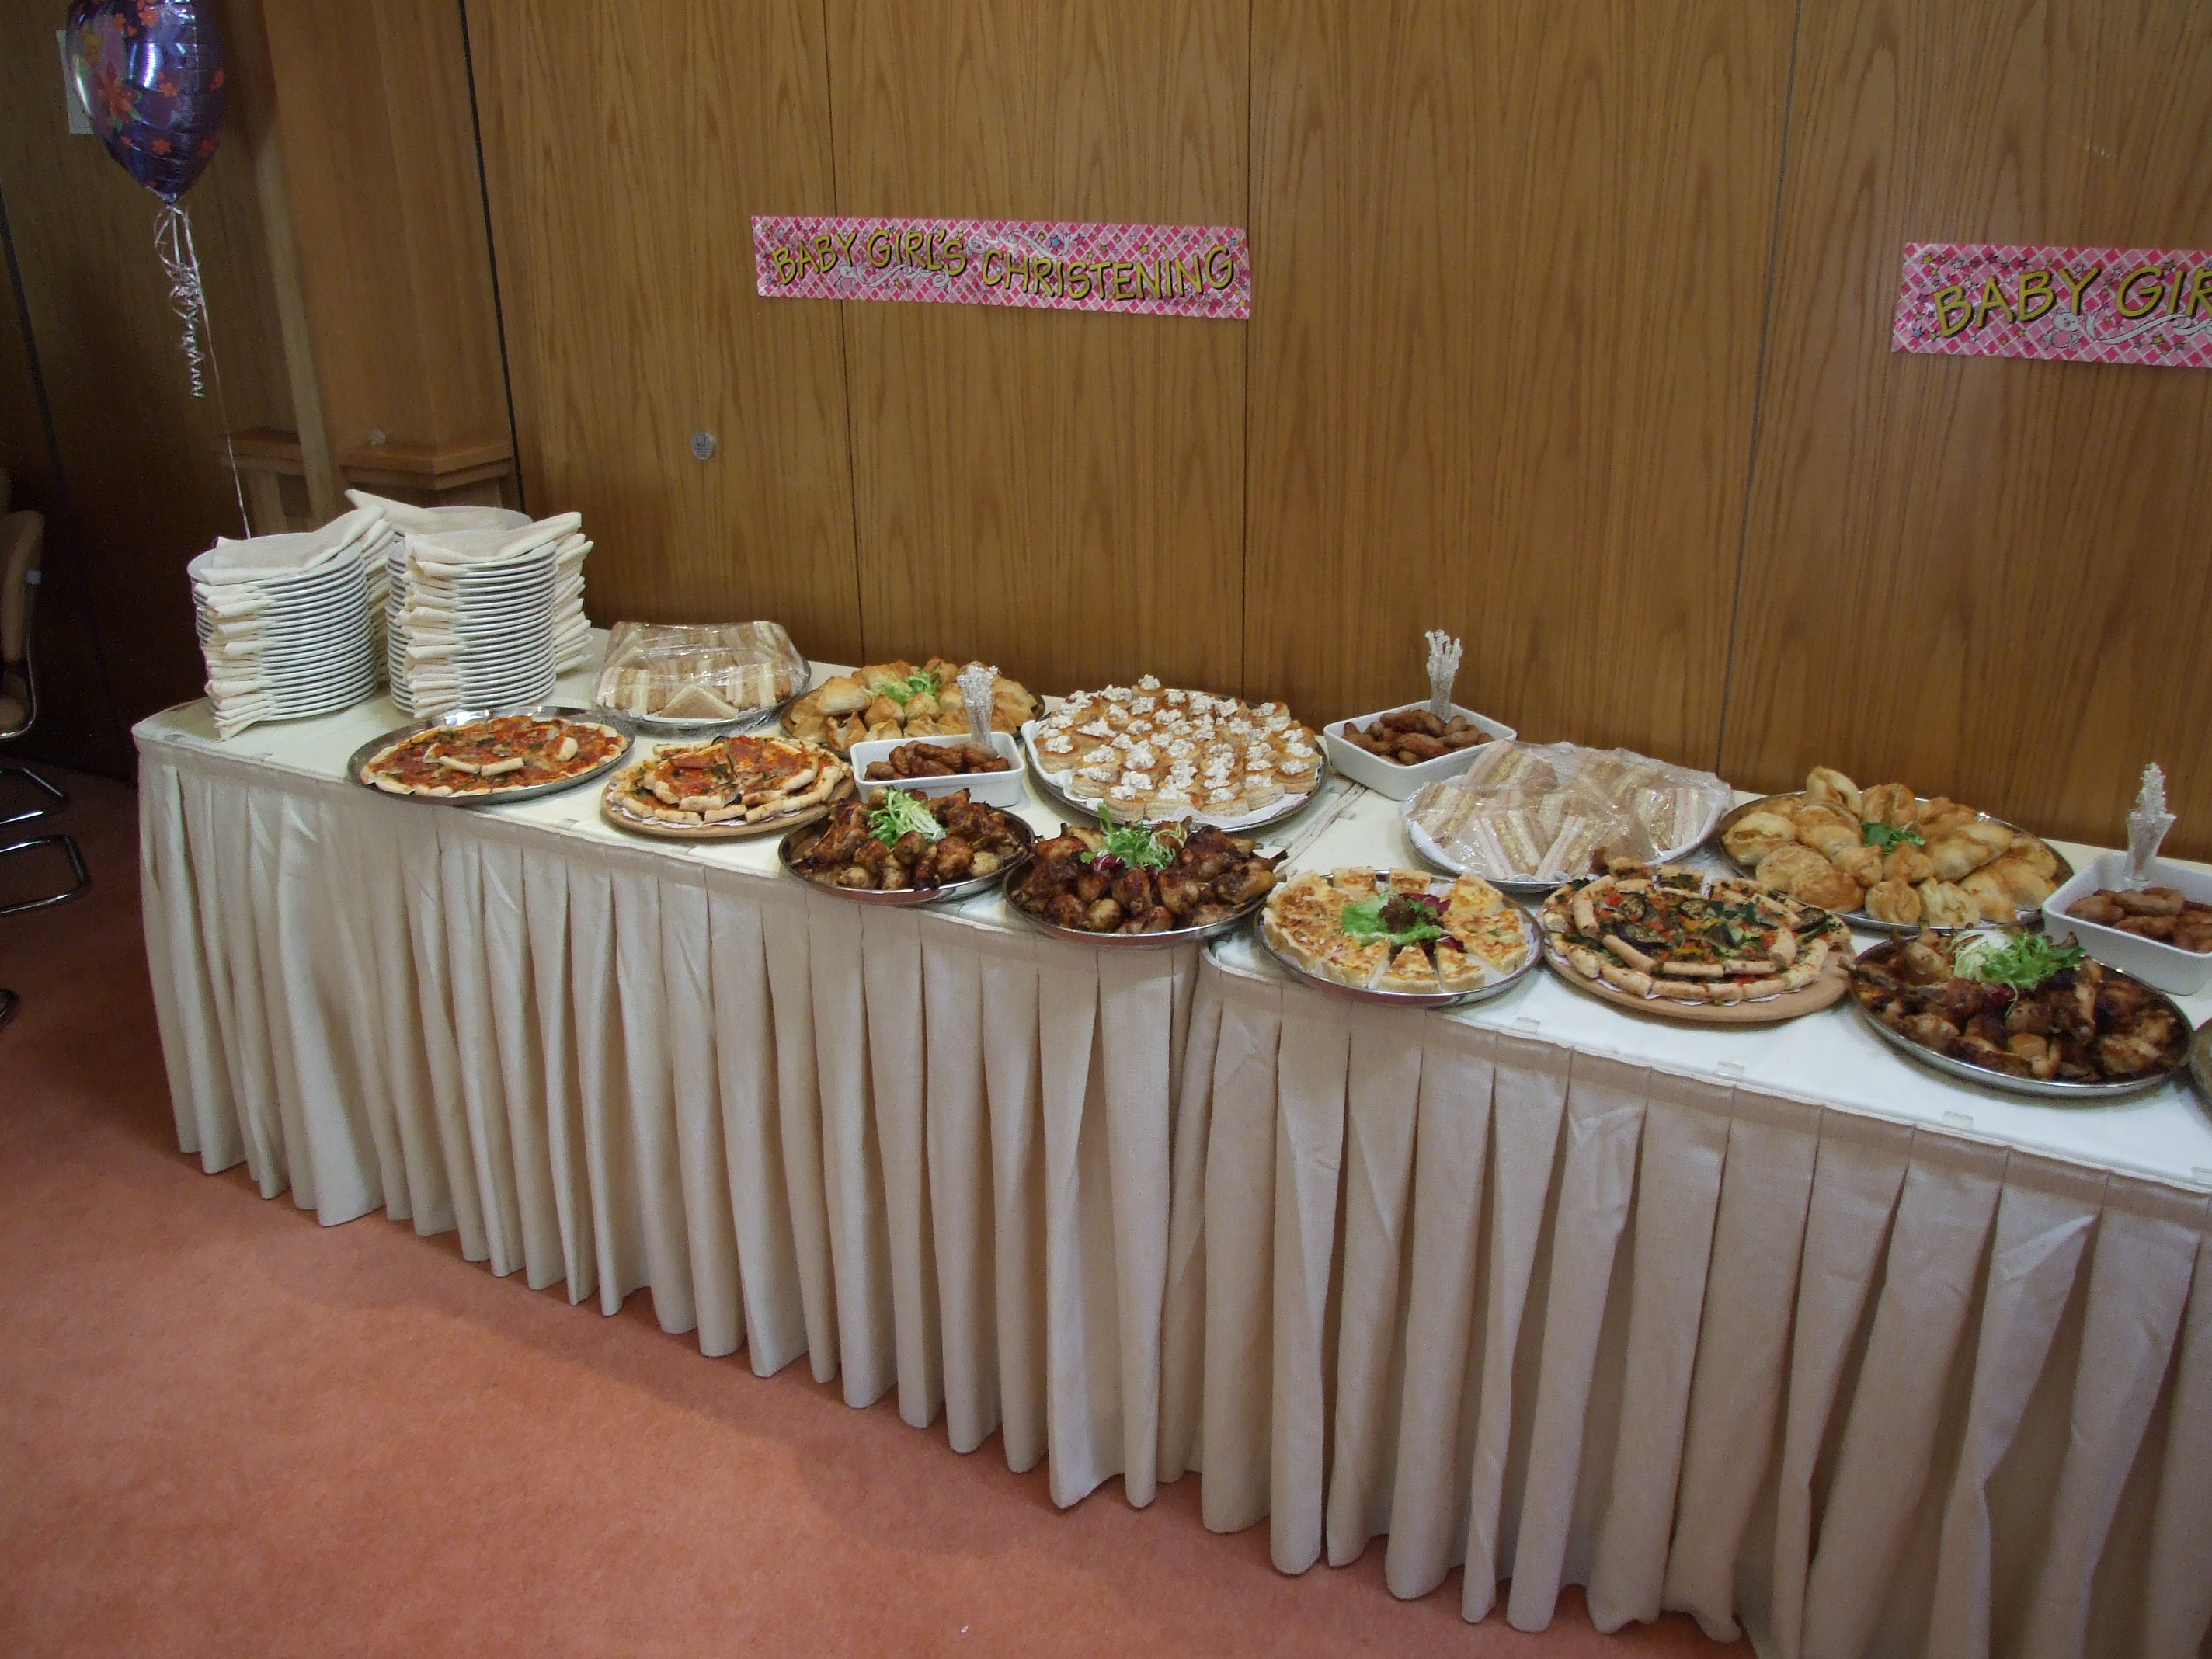 FileBuffet Food Platterjpg Wikimedia Commons